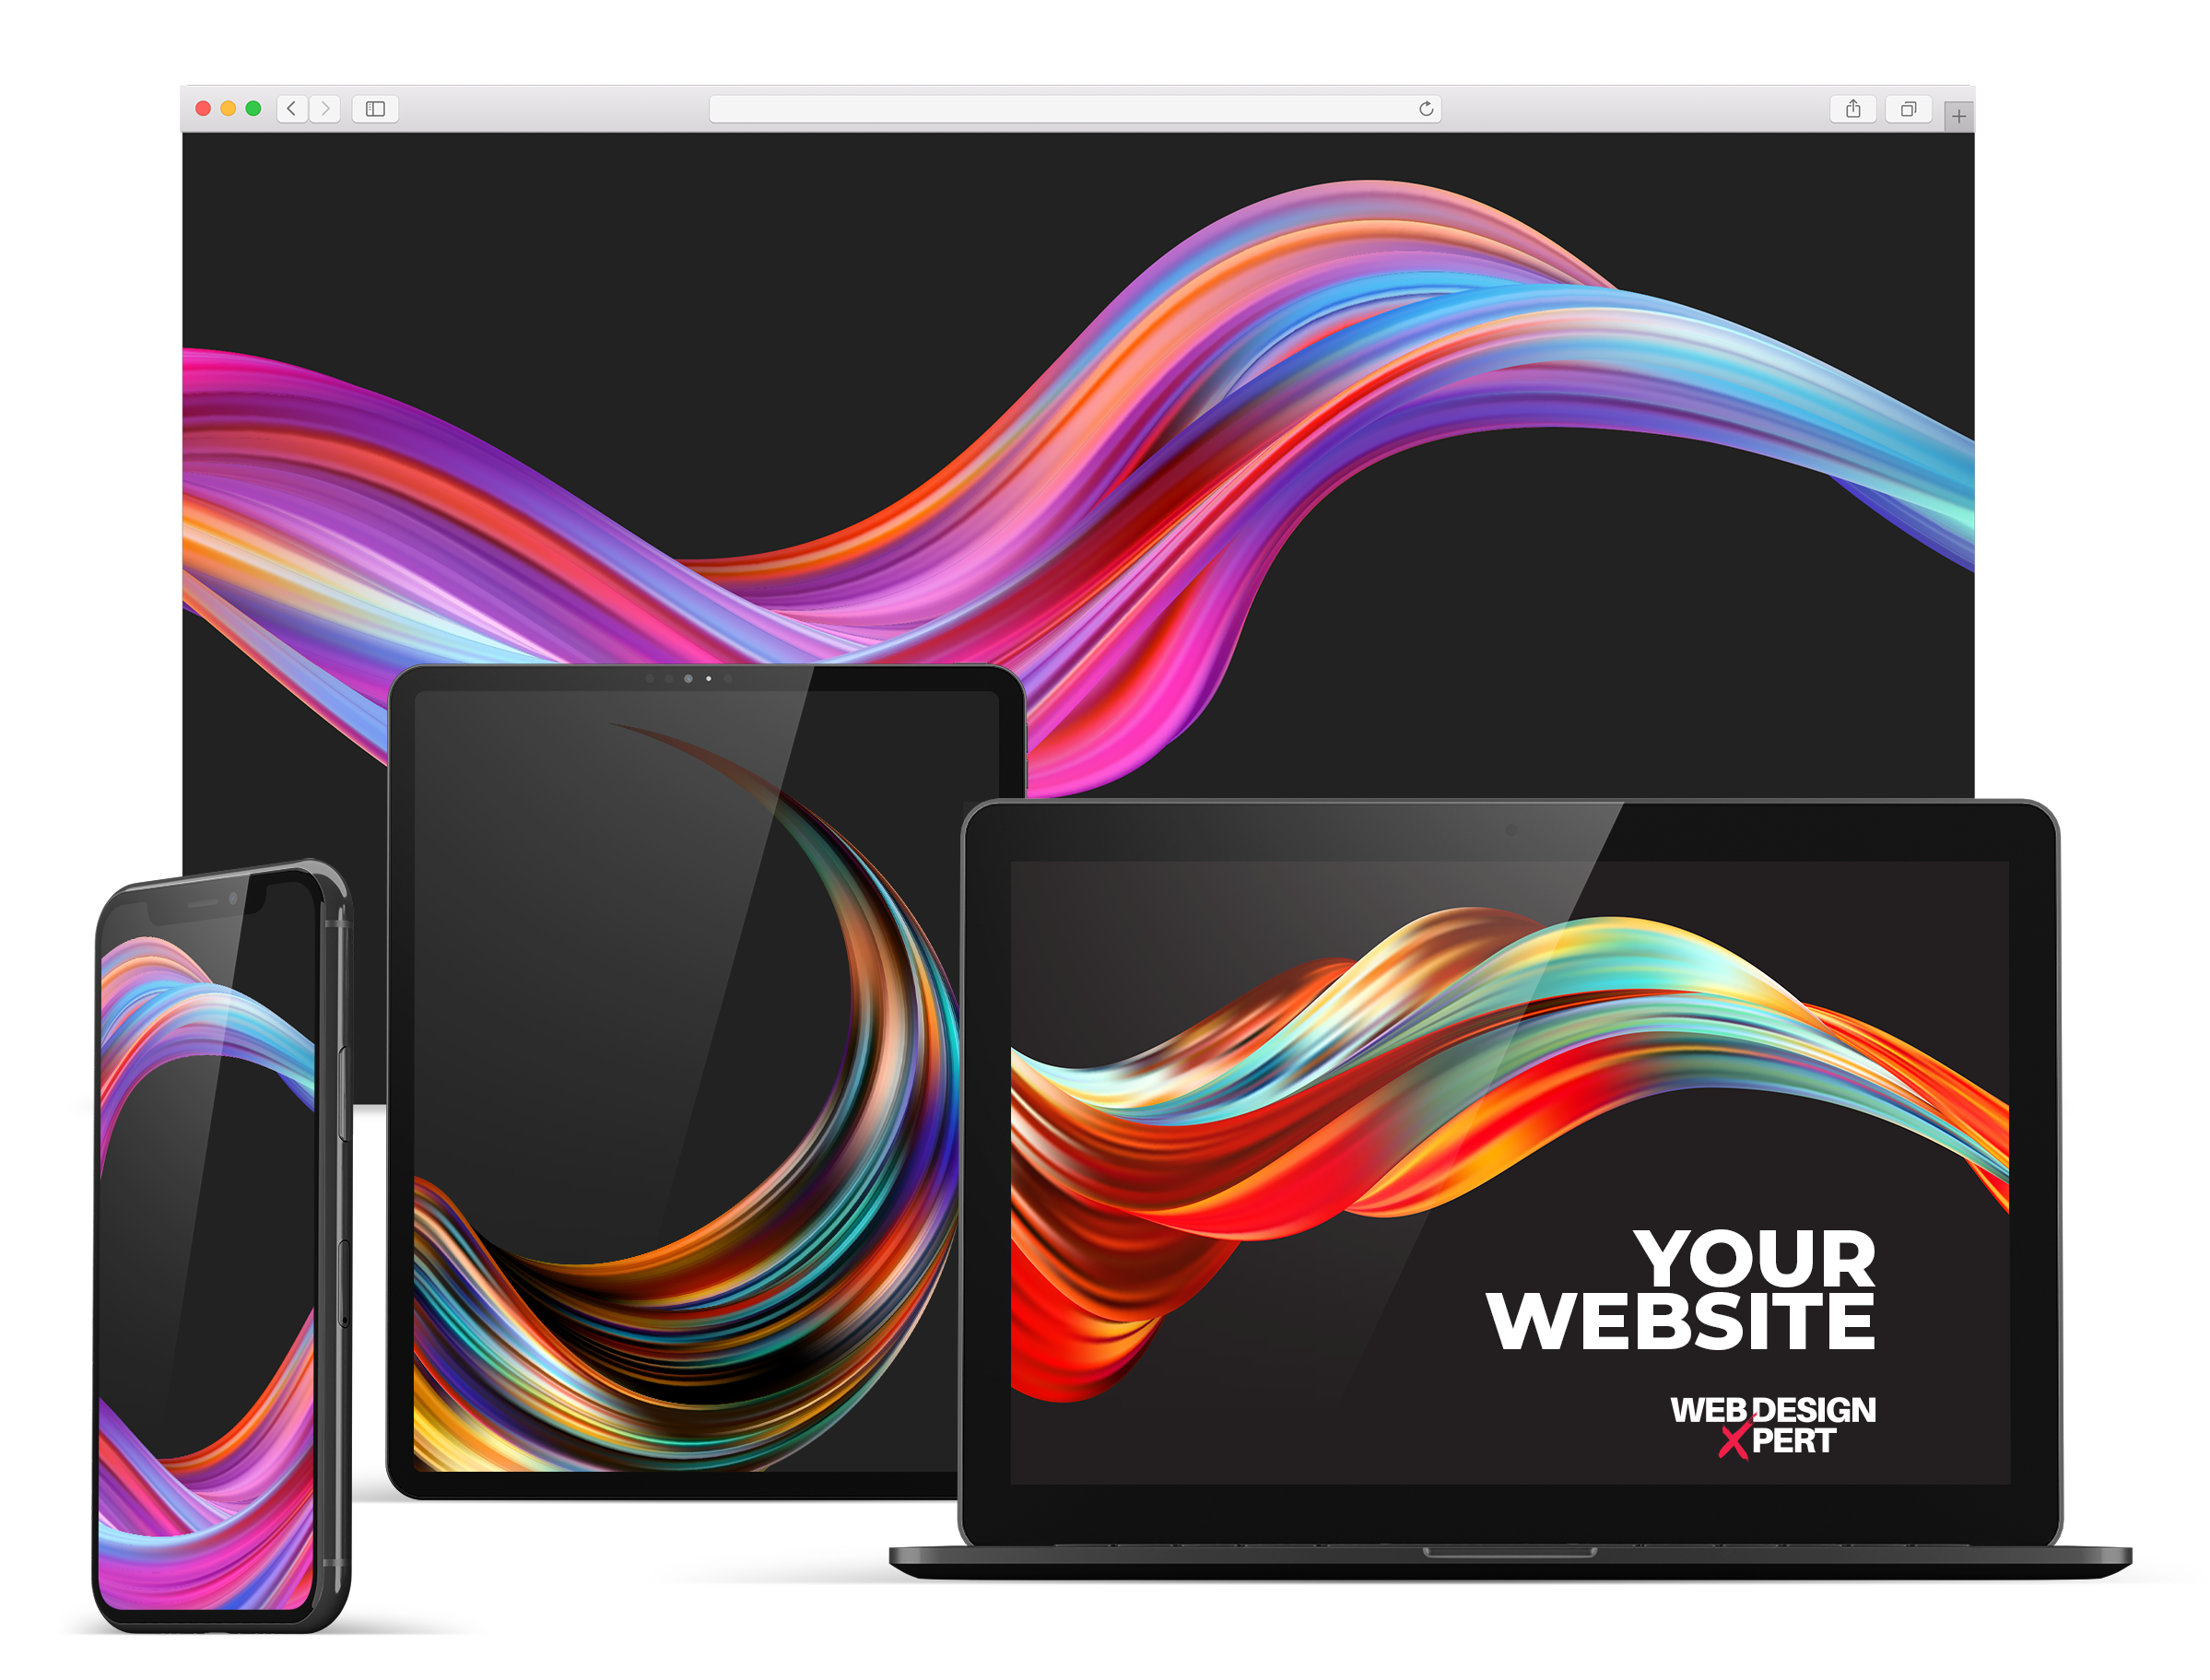 Los Angeles Web Design Agency, Web Design Xpert, Launches Affordable Custom Web Design Packages with WordPress Web Design 1